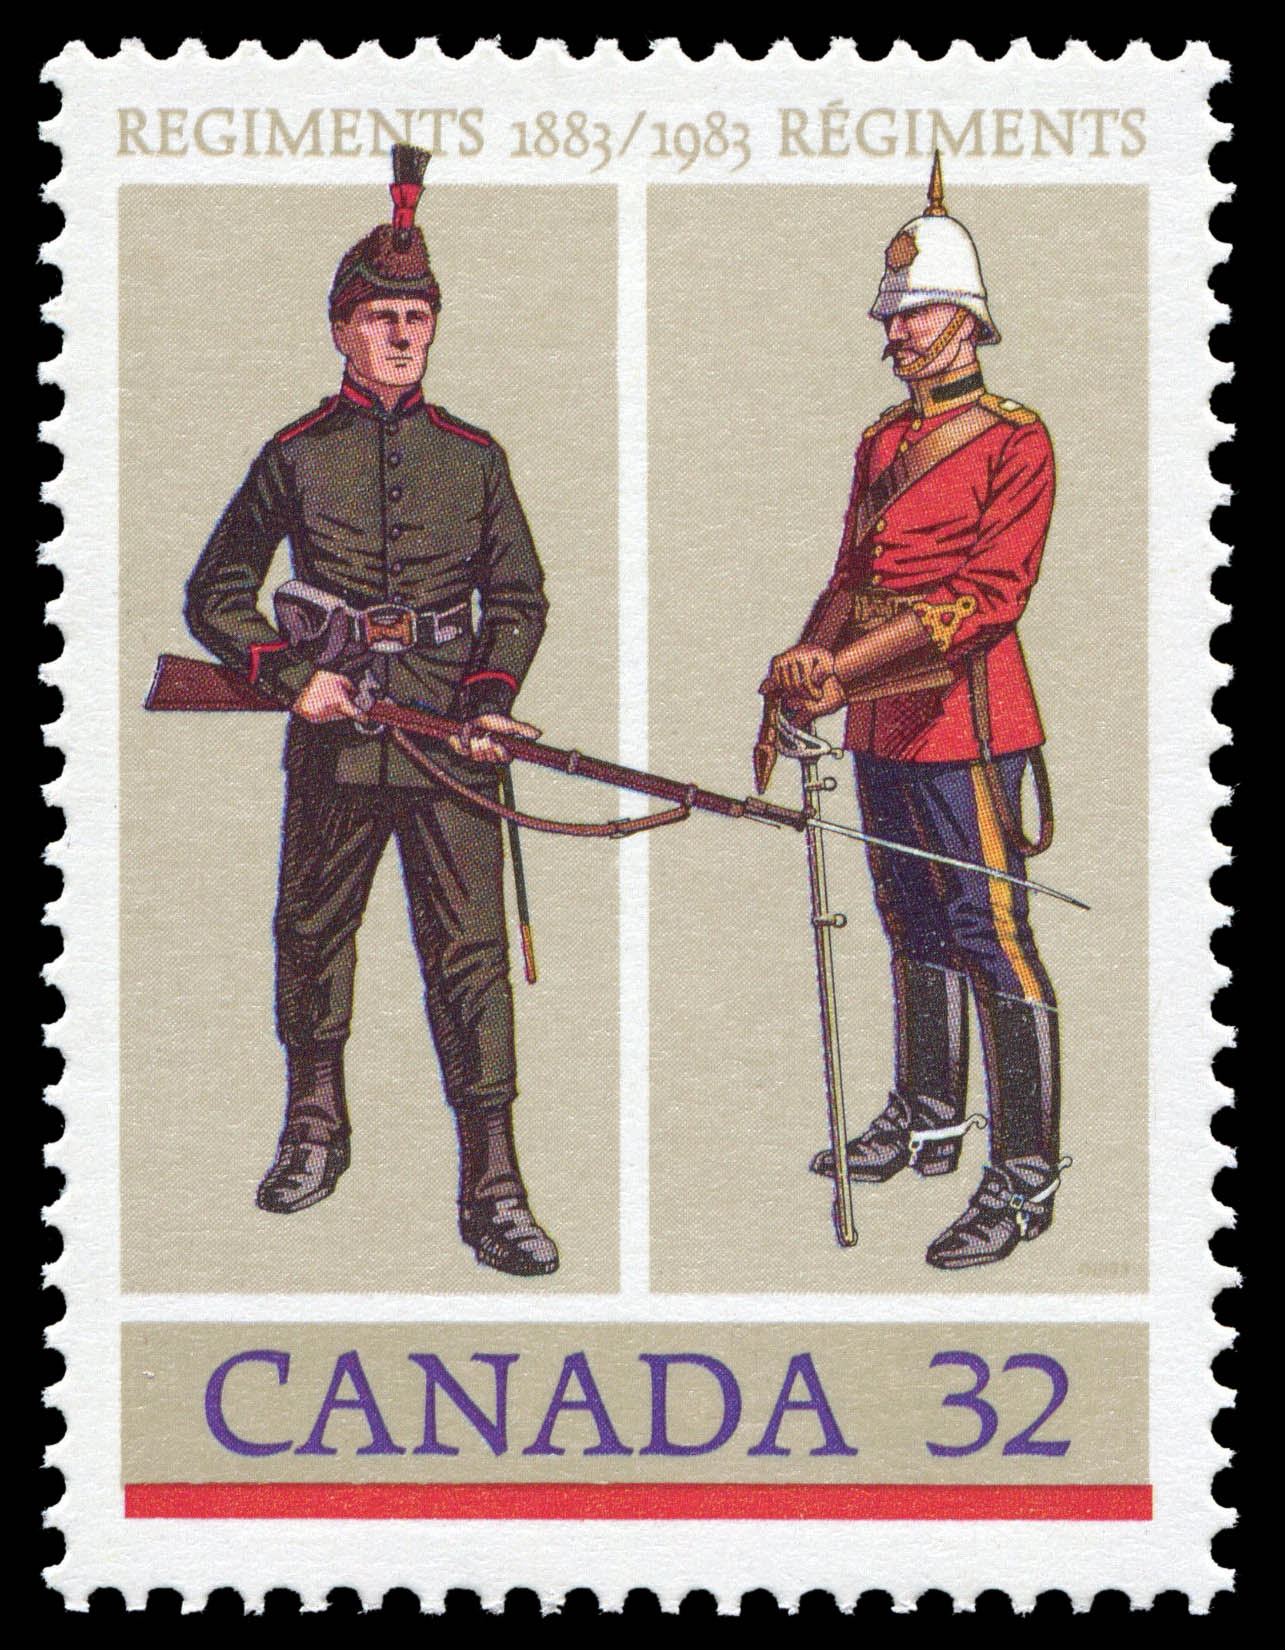 The Royal Winnipeg Rifles, The Royal Canadian Dragoons Canada Postage Stamp